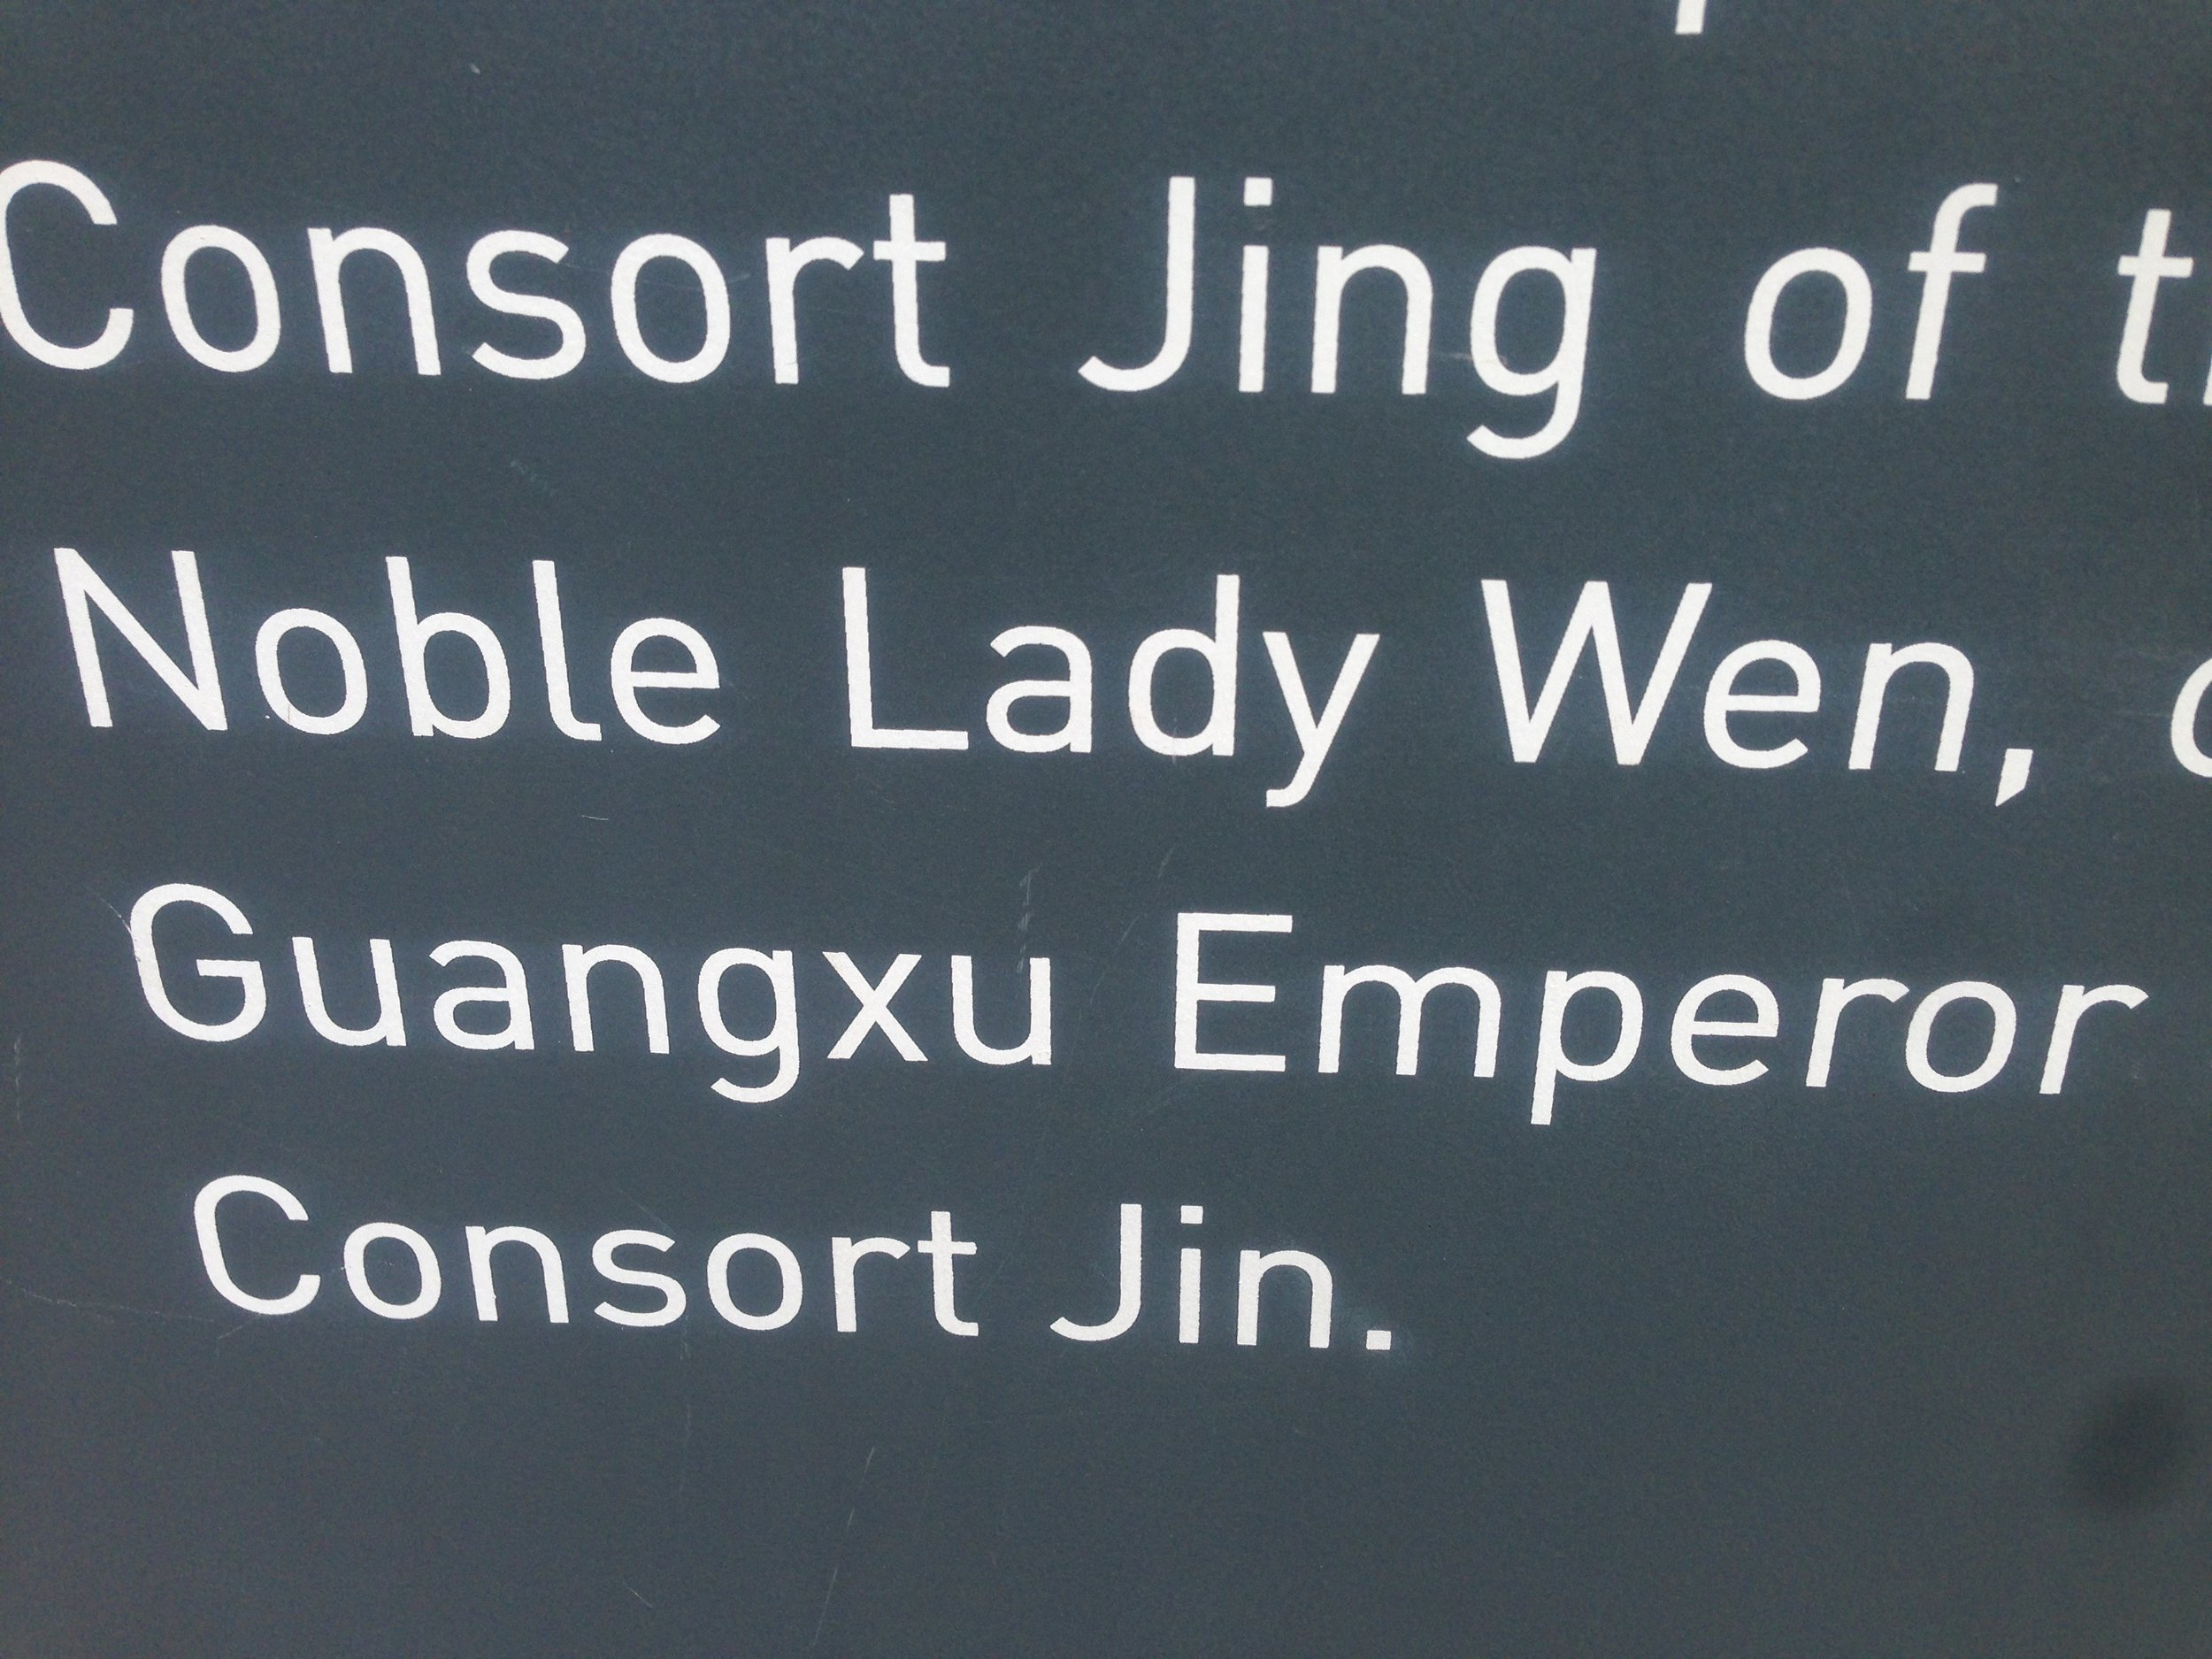 Apparently I'm a Noble Lady at the Palace of Eternal Harmony in the Forbidden City, oooo la laaa